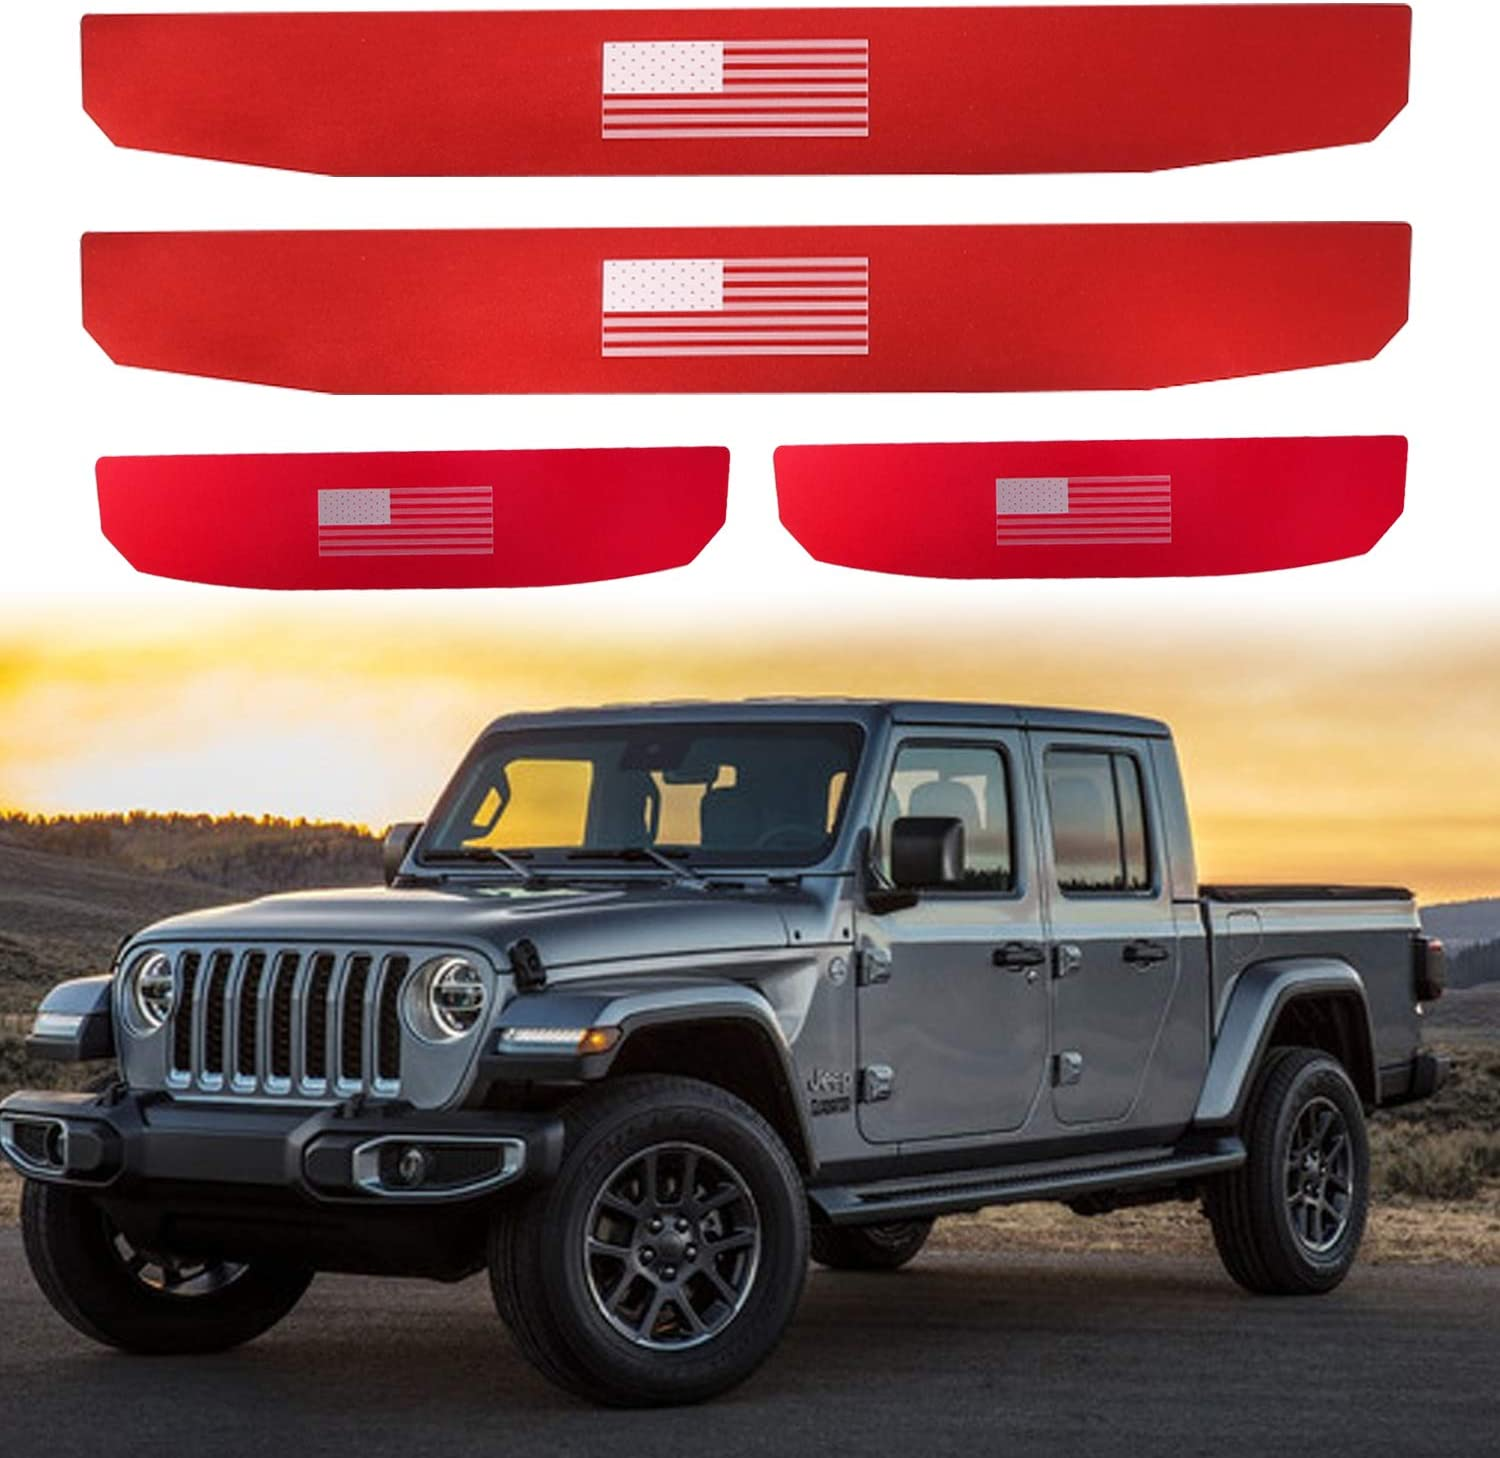 XBEEK Door Sill Guards for 2018-2019 Jeep Wrangler JL and 2020 Jeep Gladiator JT Accessories Entry Plate Cover with Since 1941 Logo Black